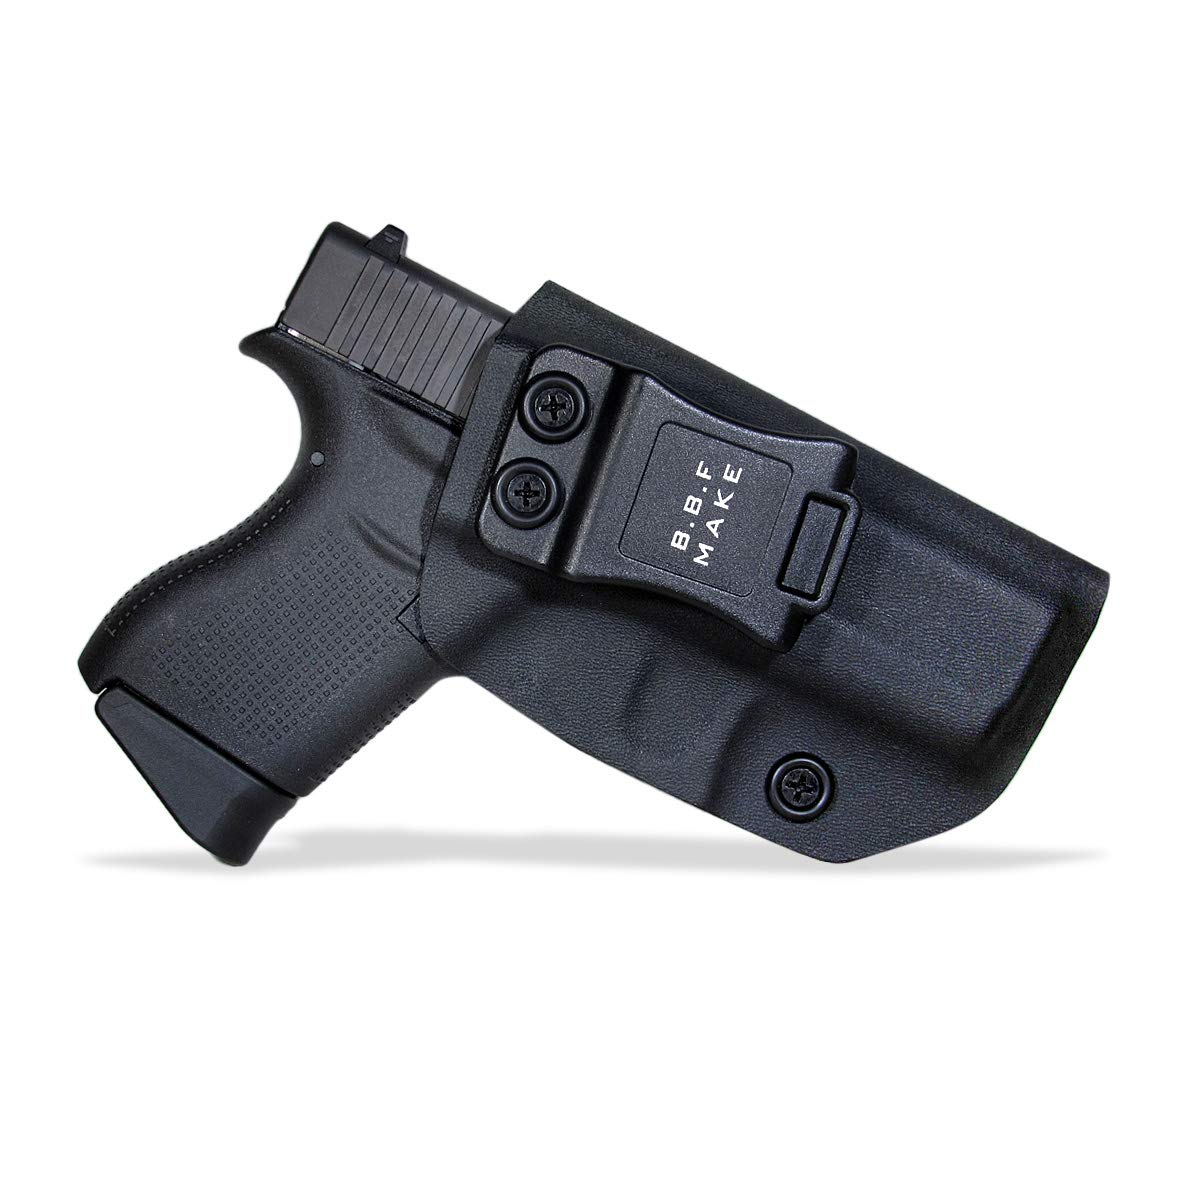 B.B.F Make IWB KYDEX Holster Fit: Glock 43/43X | Retired Navy Owned Company | Inside Waistband | Adjustable Cant (Black, Left Hand Draw (IWB)) by B.B.F Make